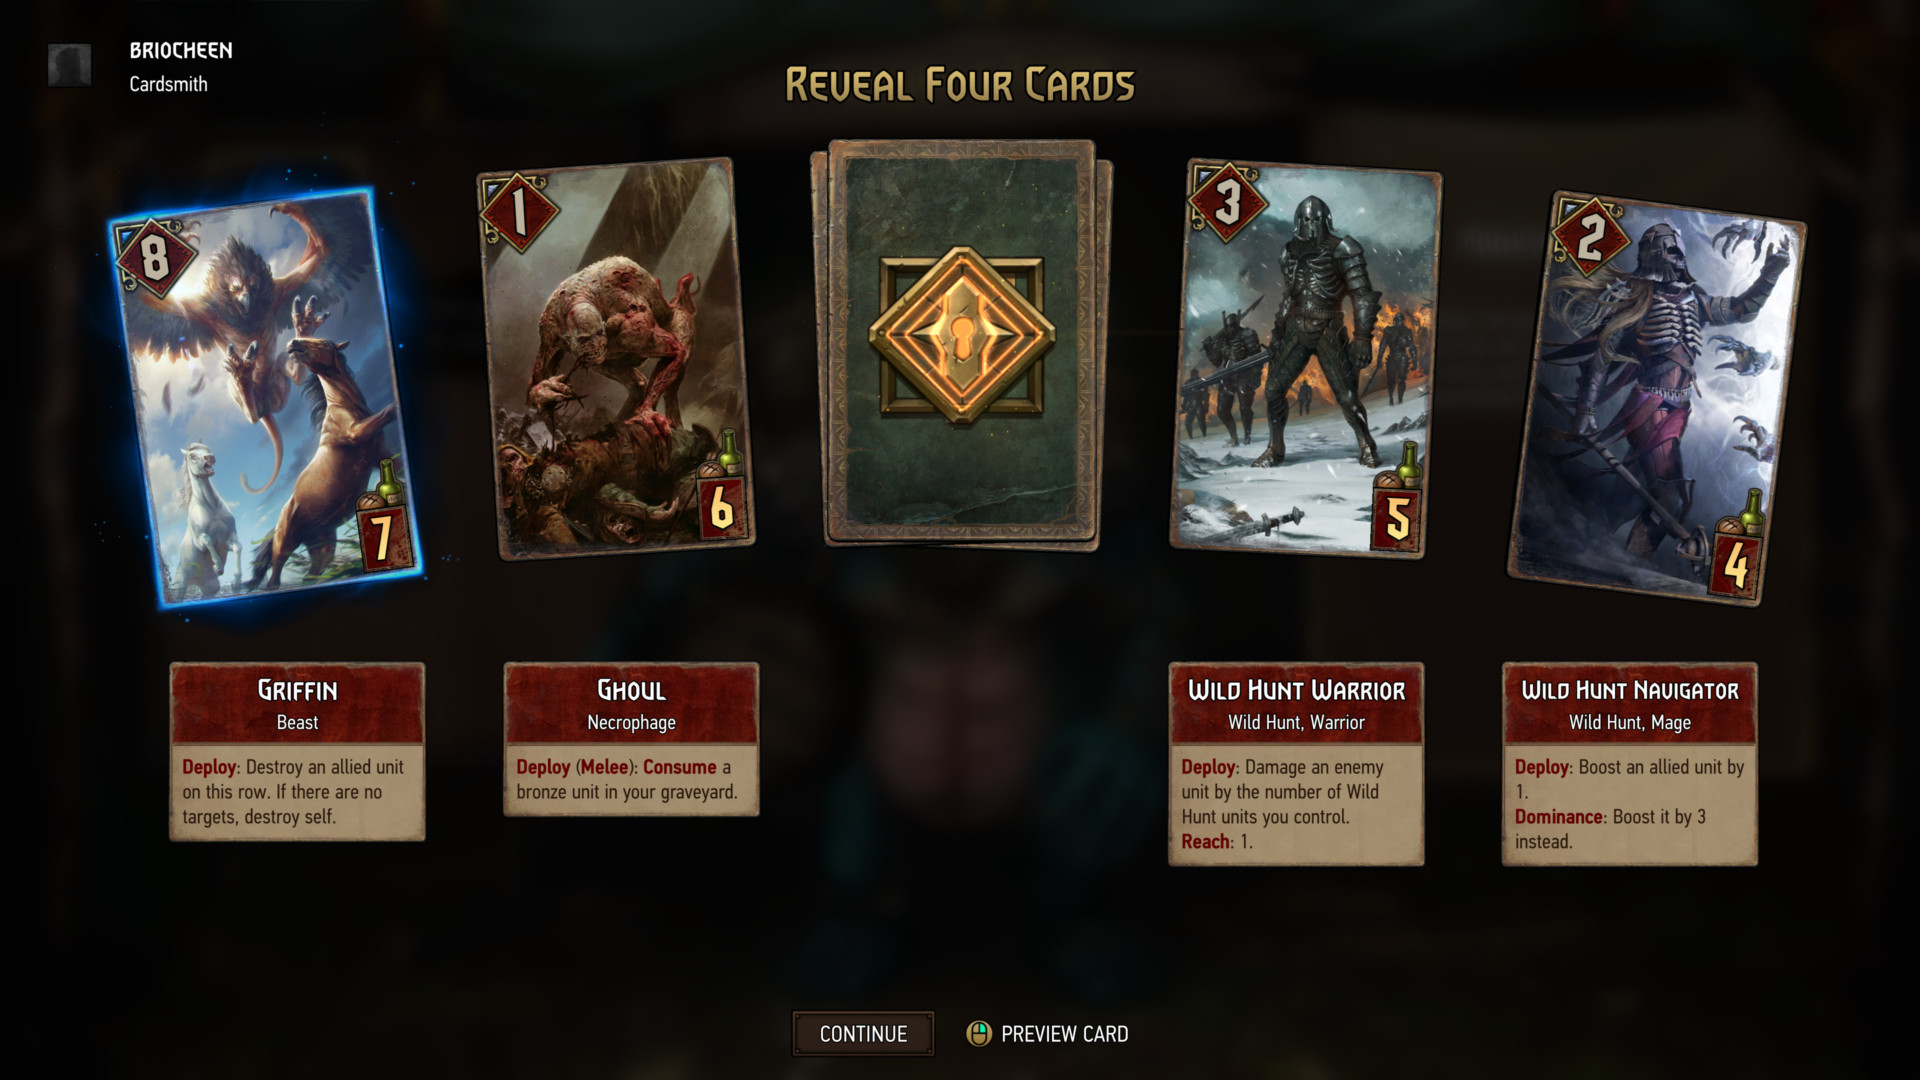 Reveal four cards screenshot of Gwent: The Witcher Card Game video game interface.